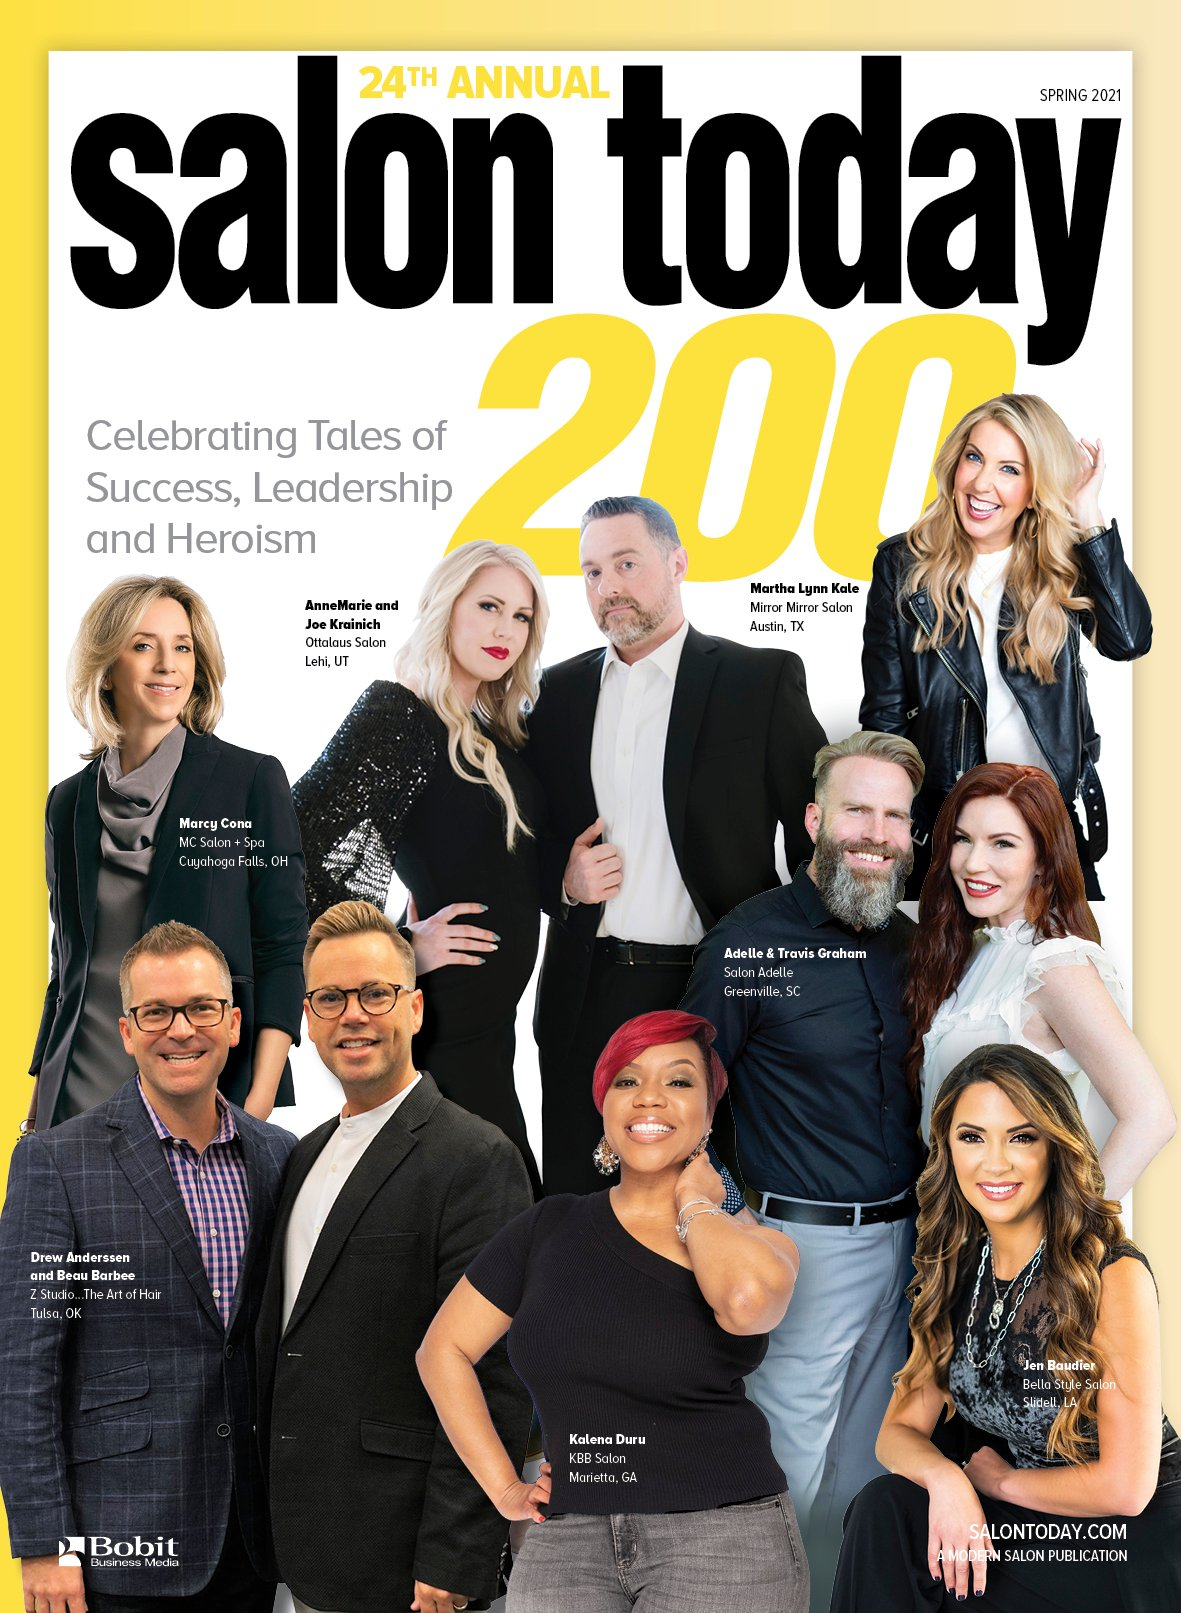 Announcing the 2021 SALON TODAY 200 Honorees